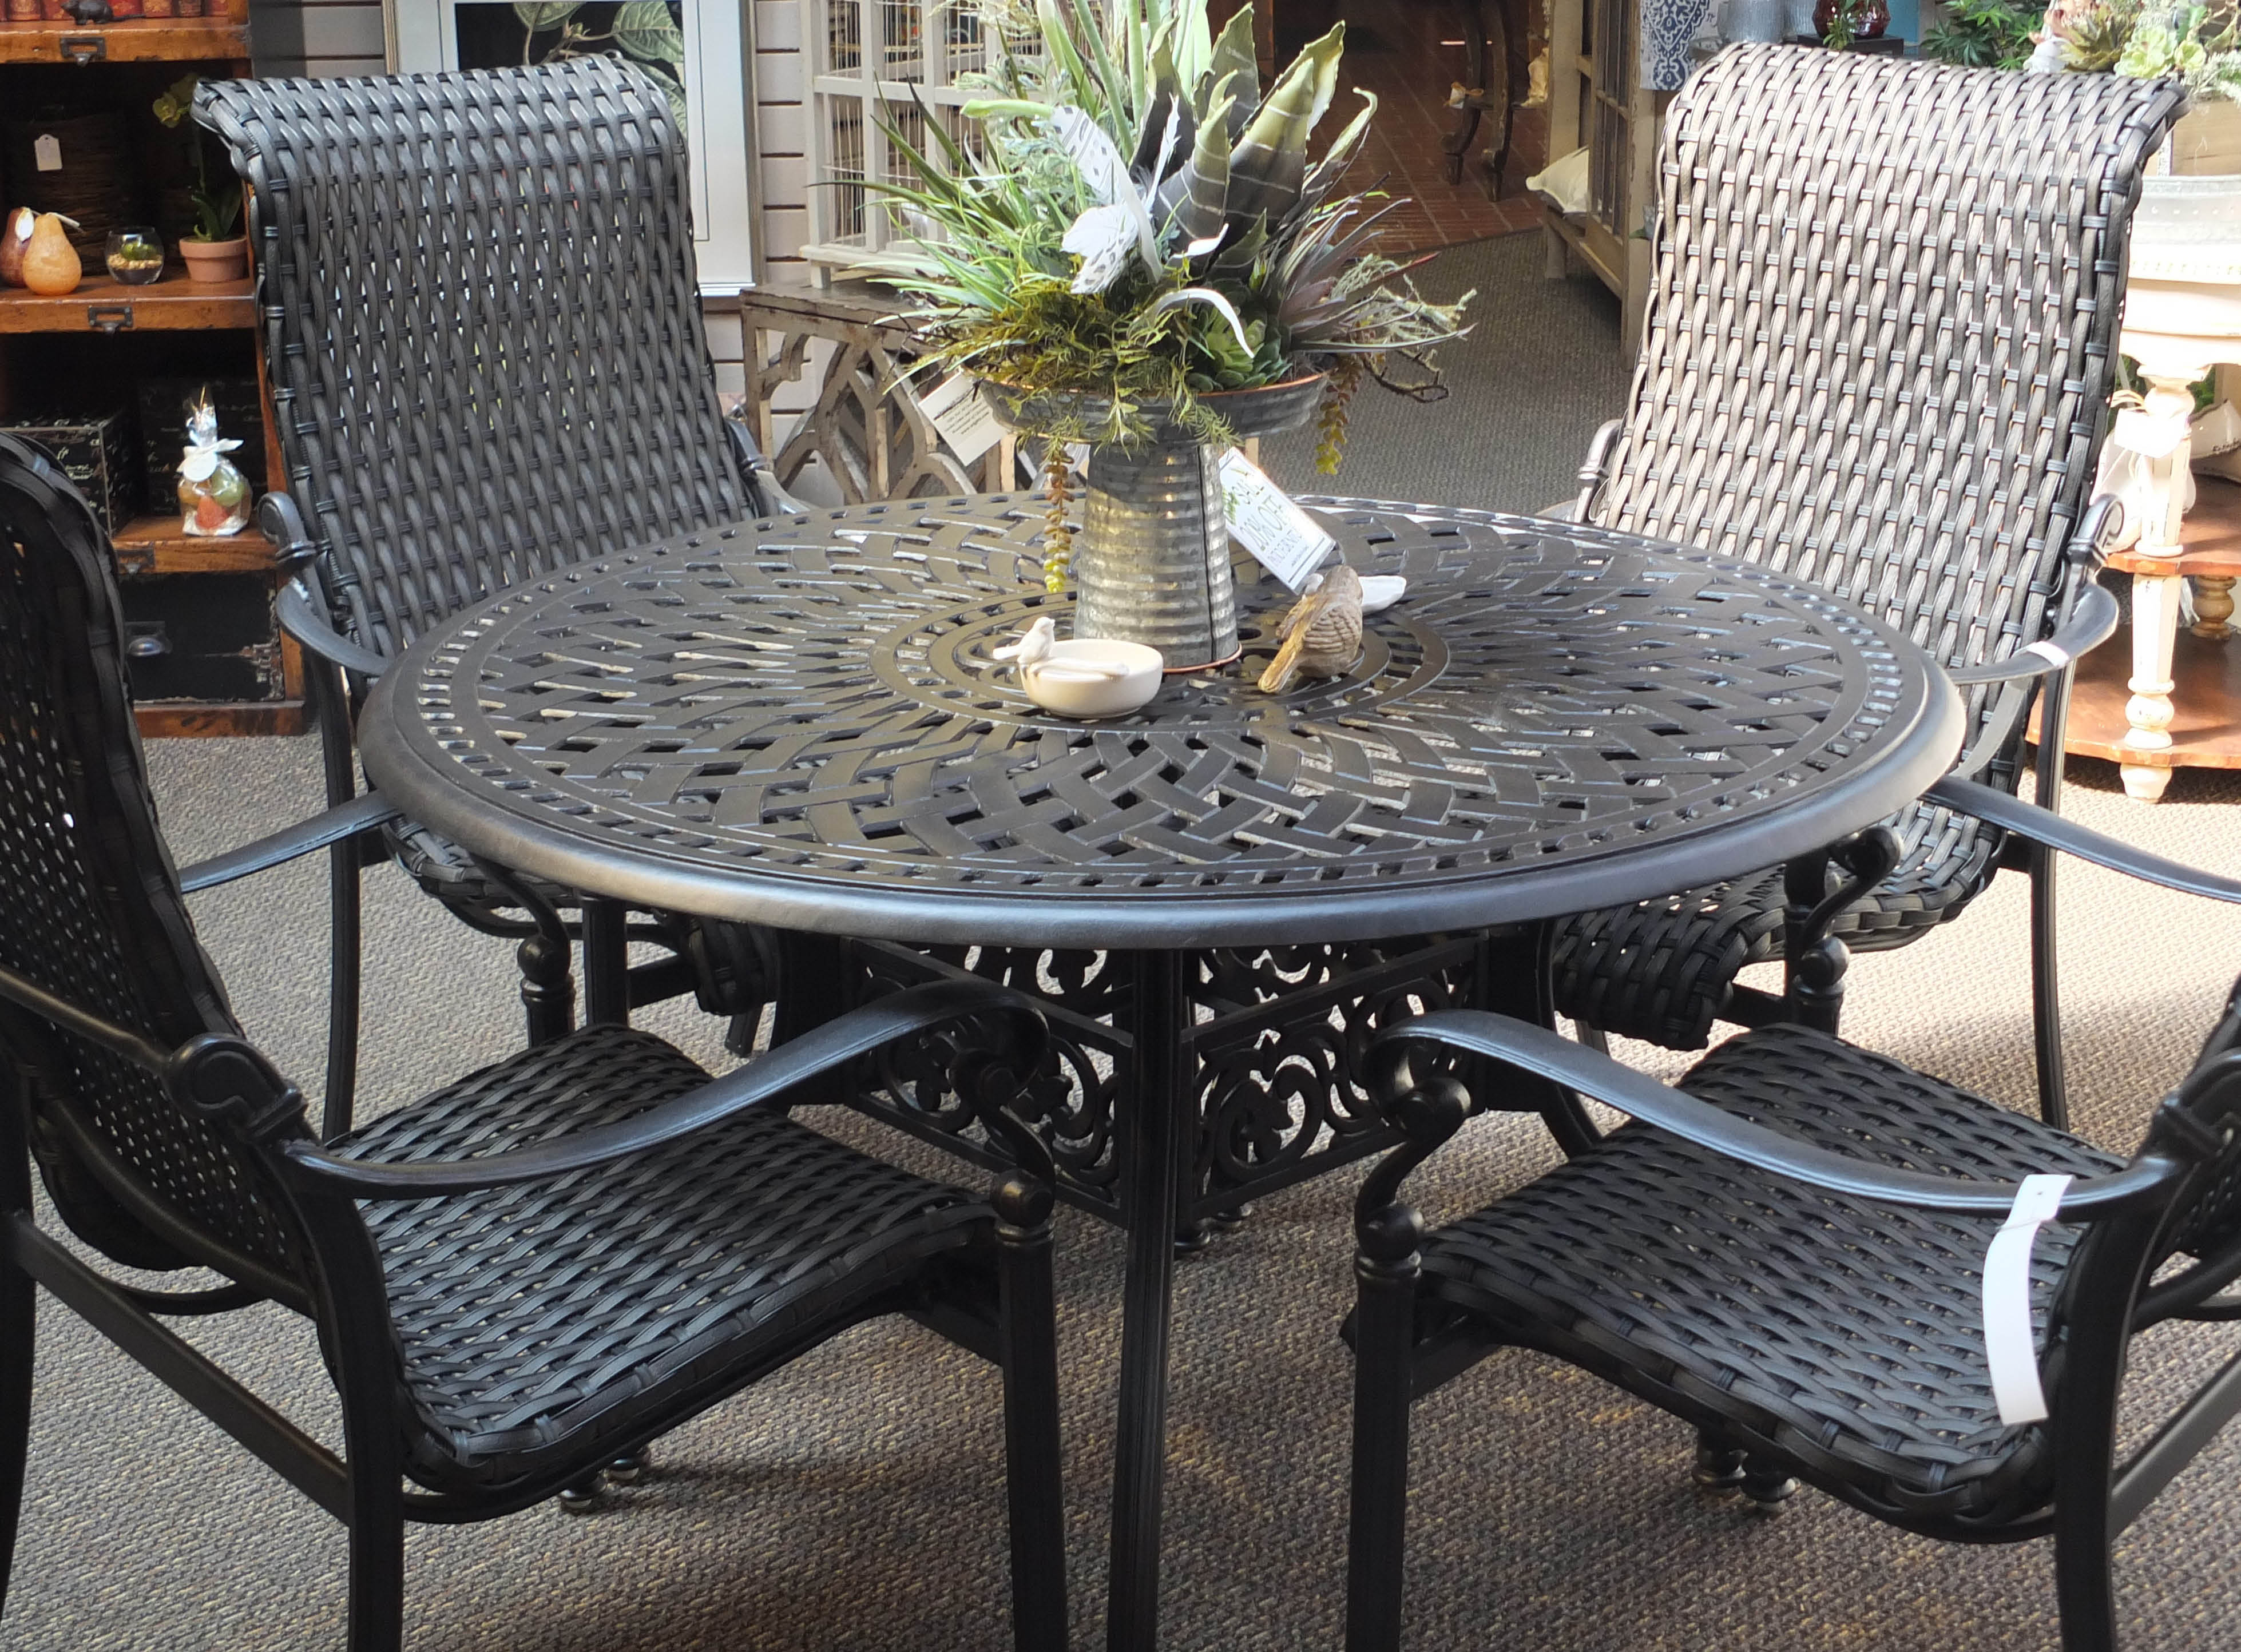 Huge selection outdoor patio furniture at Wight's Nursery in Lynnwood, WA